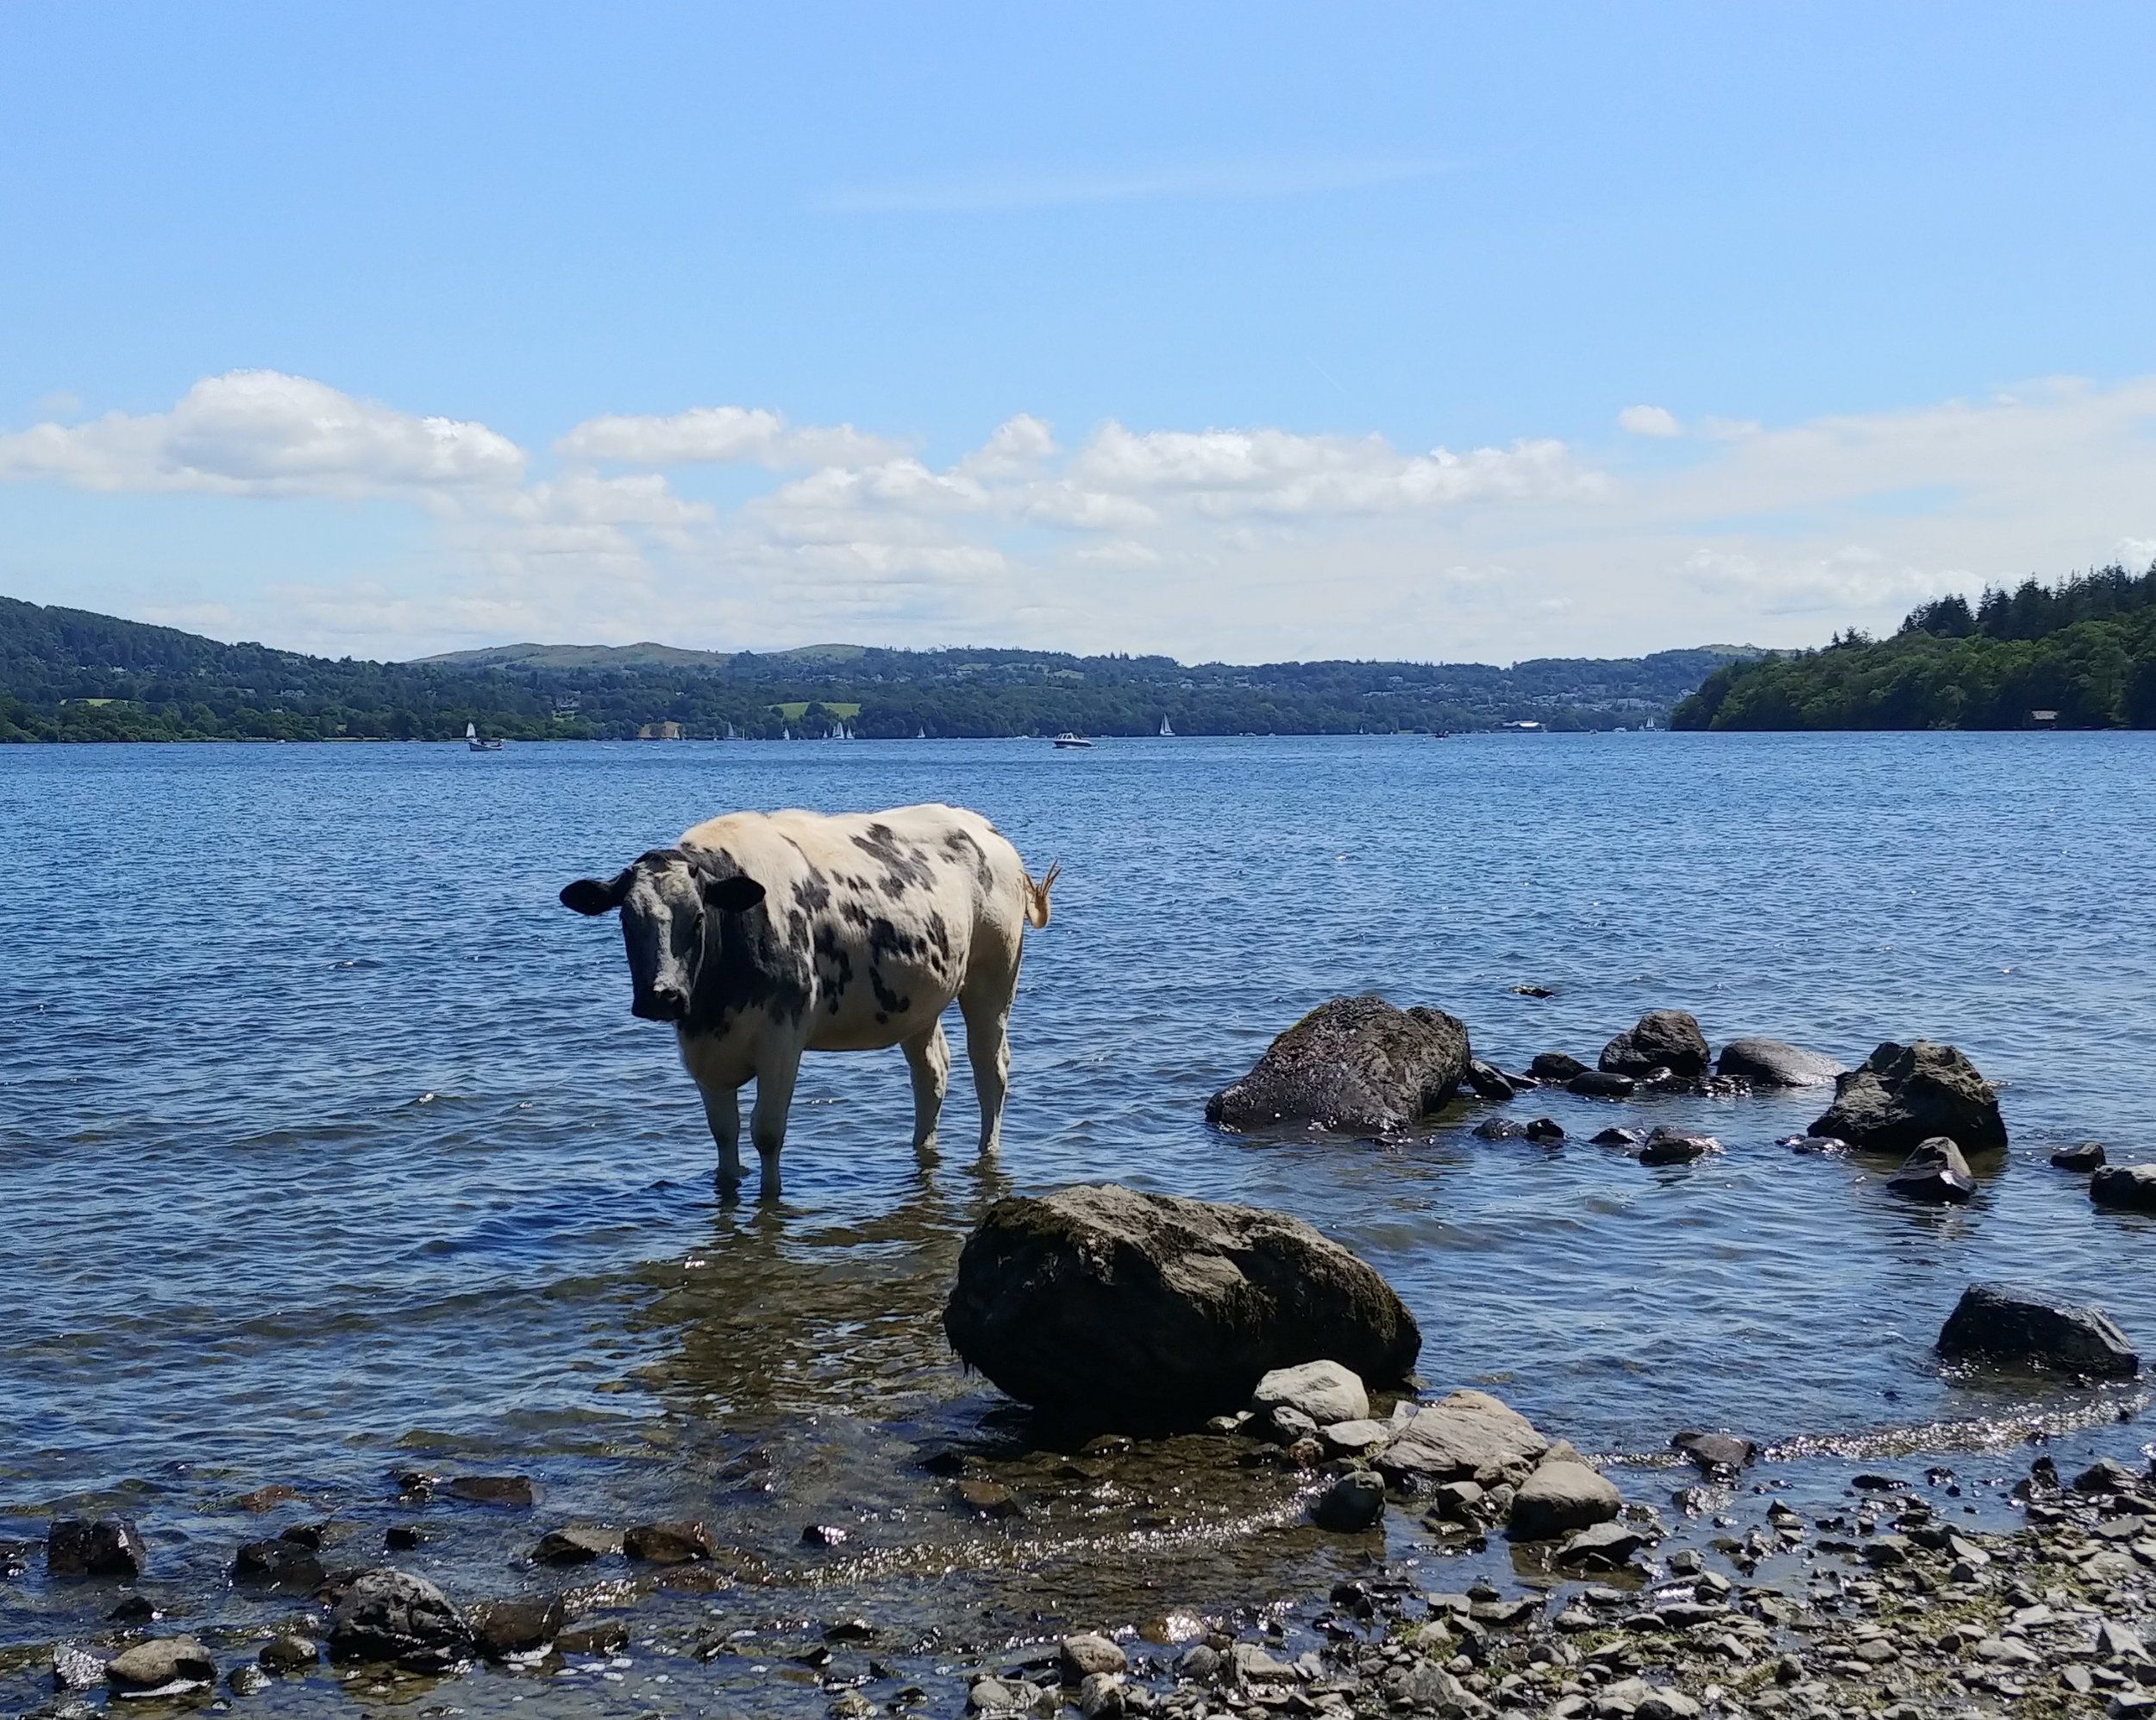 Some cows were hanging out in the lake, as you do.